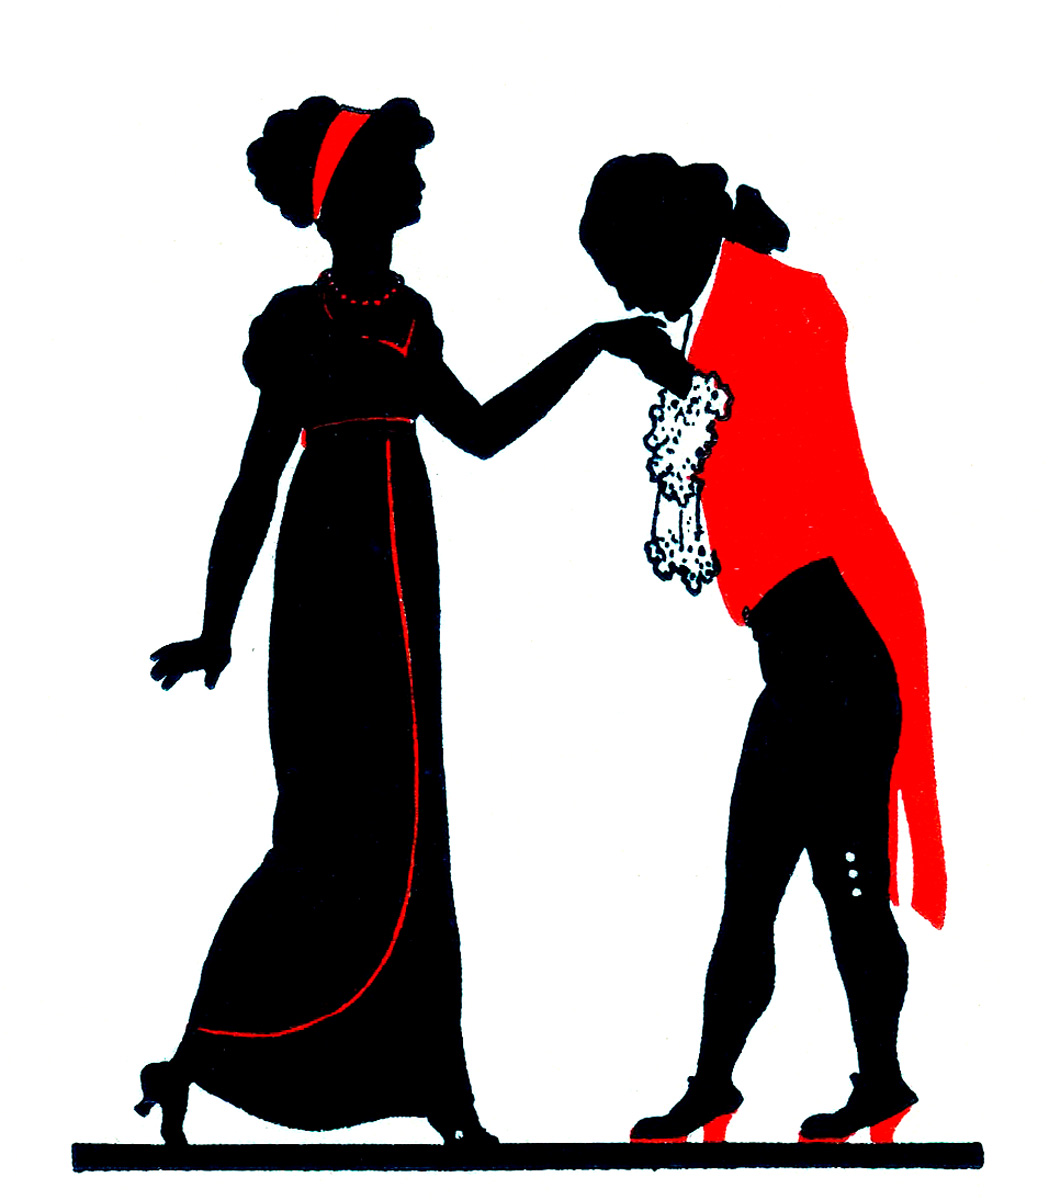 silhouette people clipart at getdrawings com free for personal use rh getdrawings com clipart of people smiling clipart of people shaking hands